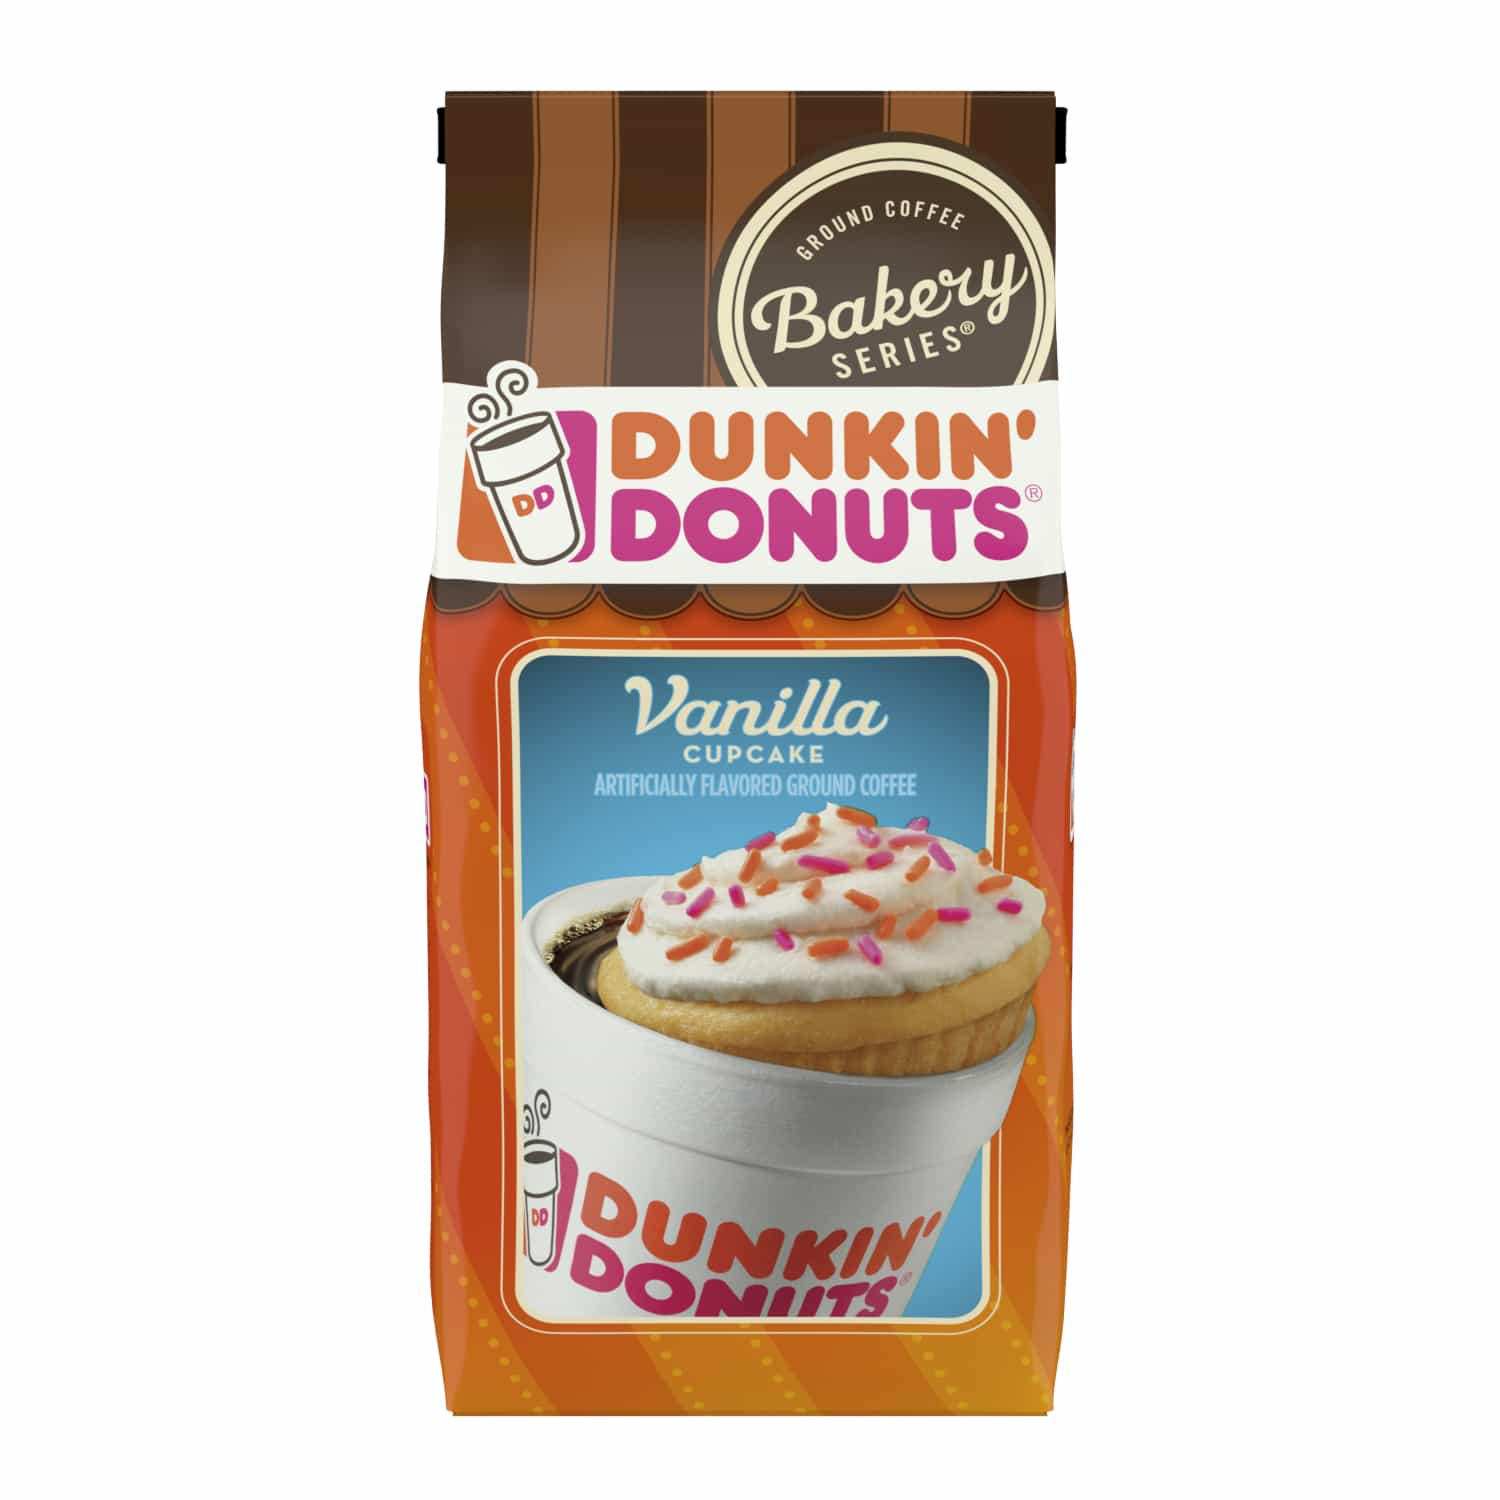 Dunkin' Donuts Celebrates 65 Years with New Vanilla Cupcake Flavored Coffee